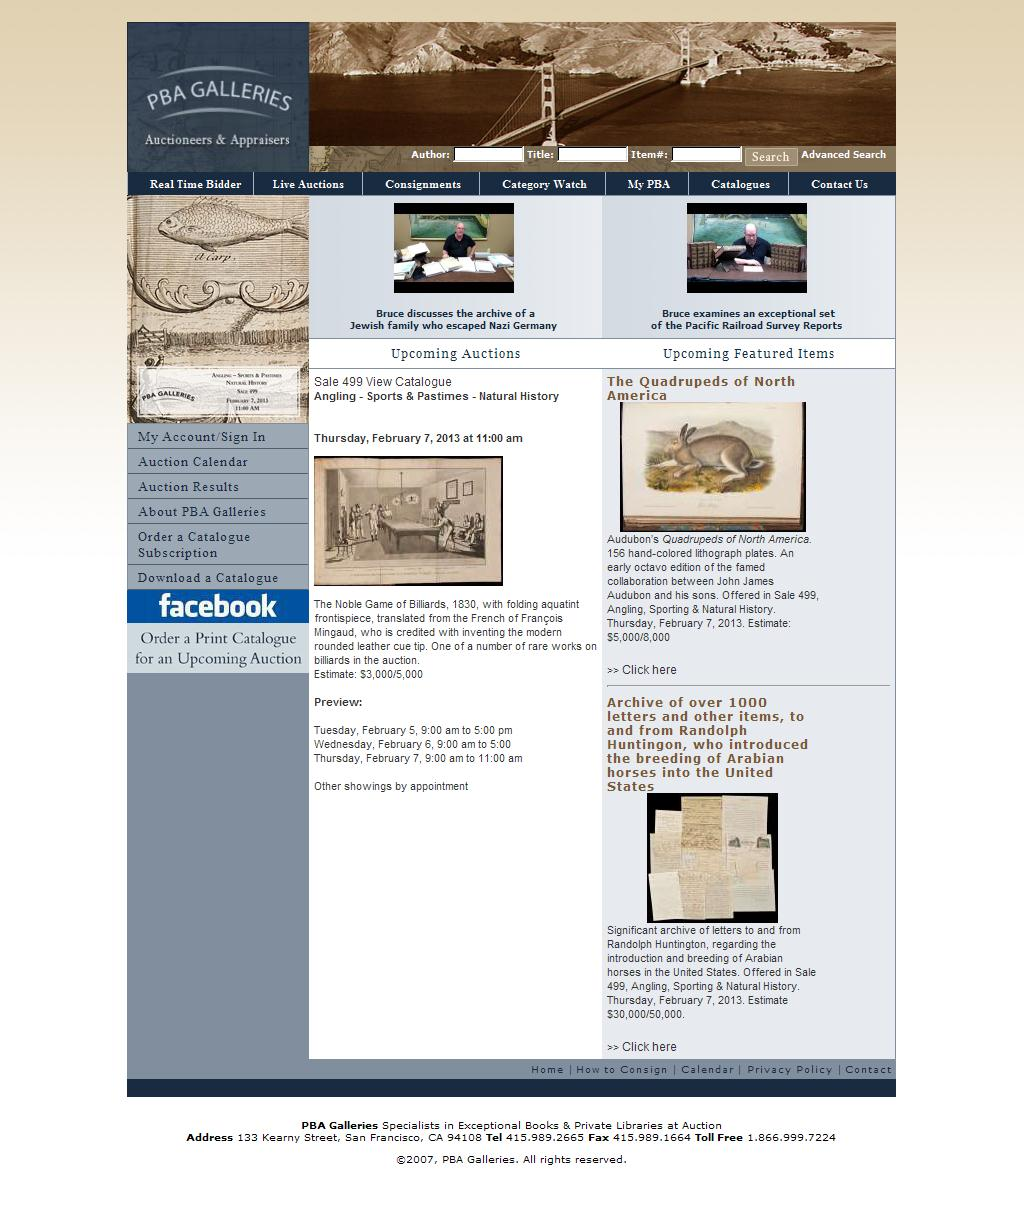 Rare Books - PBA Galleries, Auctions & Appraisers